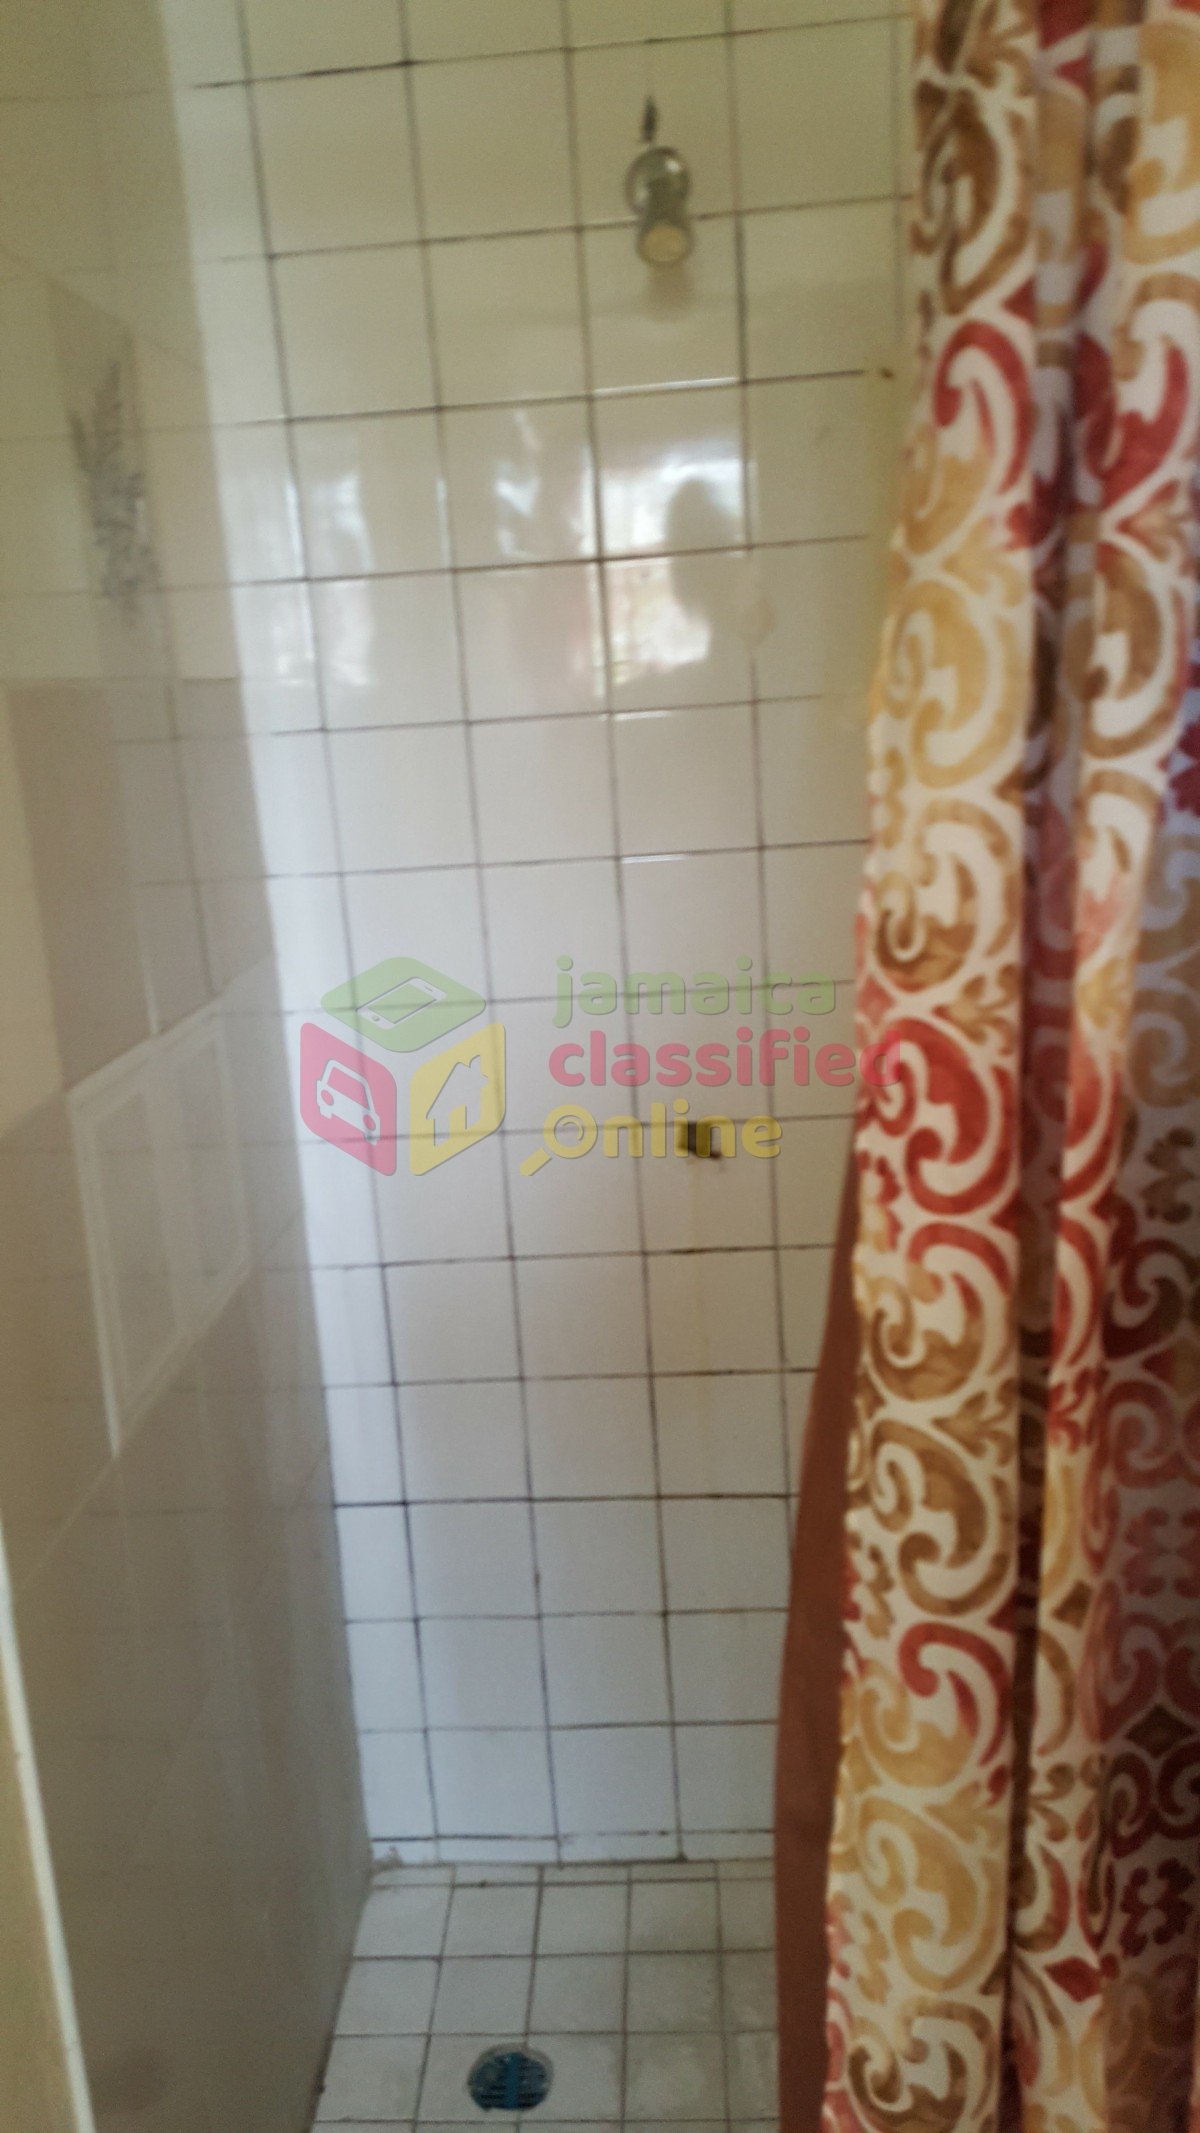 Self Contained 1 Bedroom For Rent In Mona St Andrew